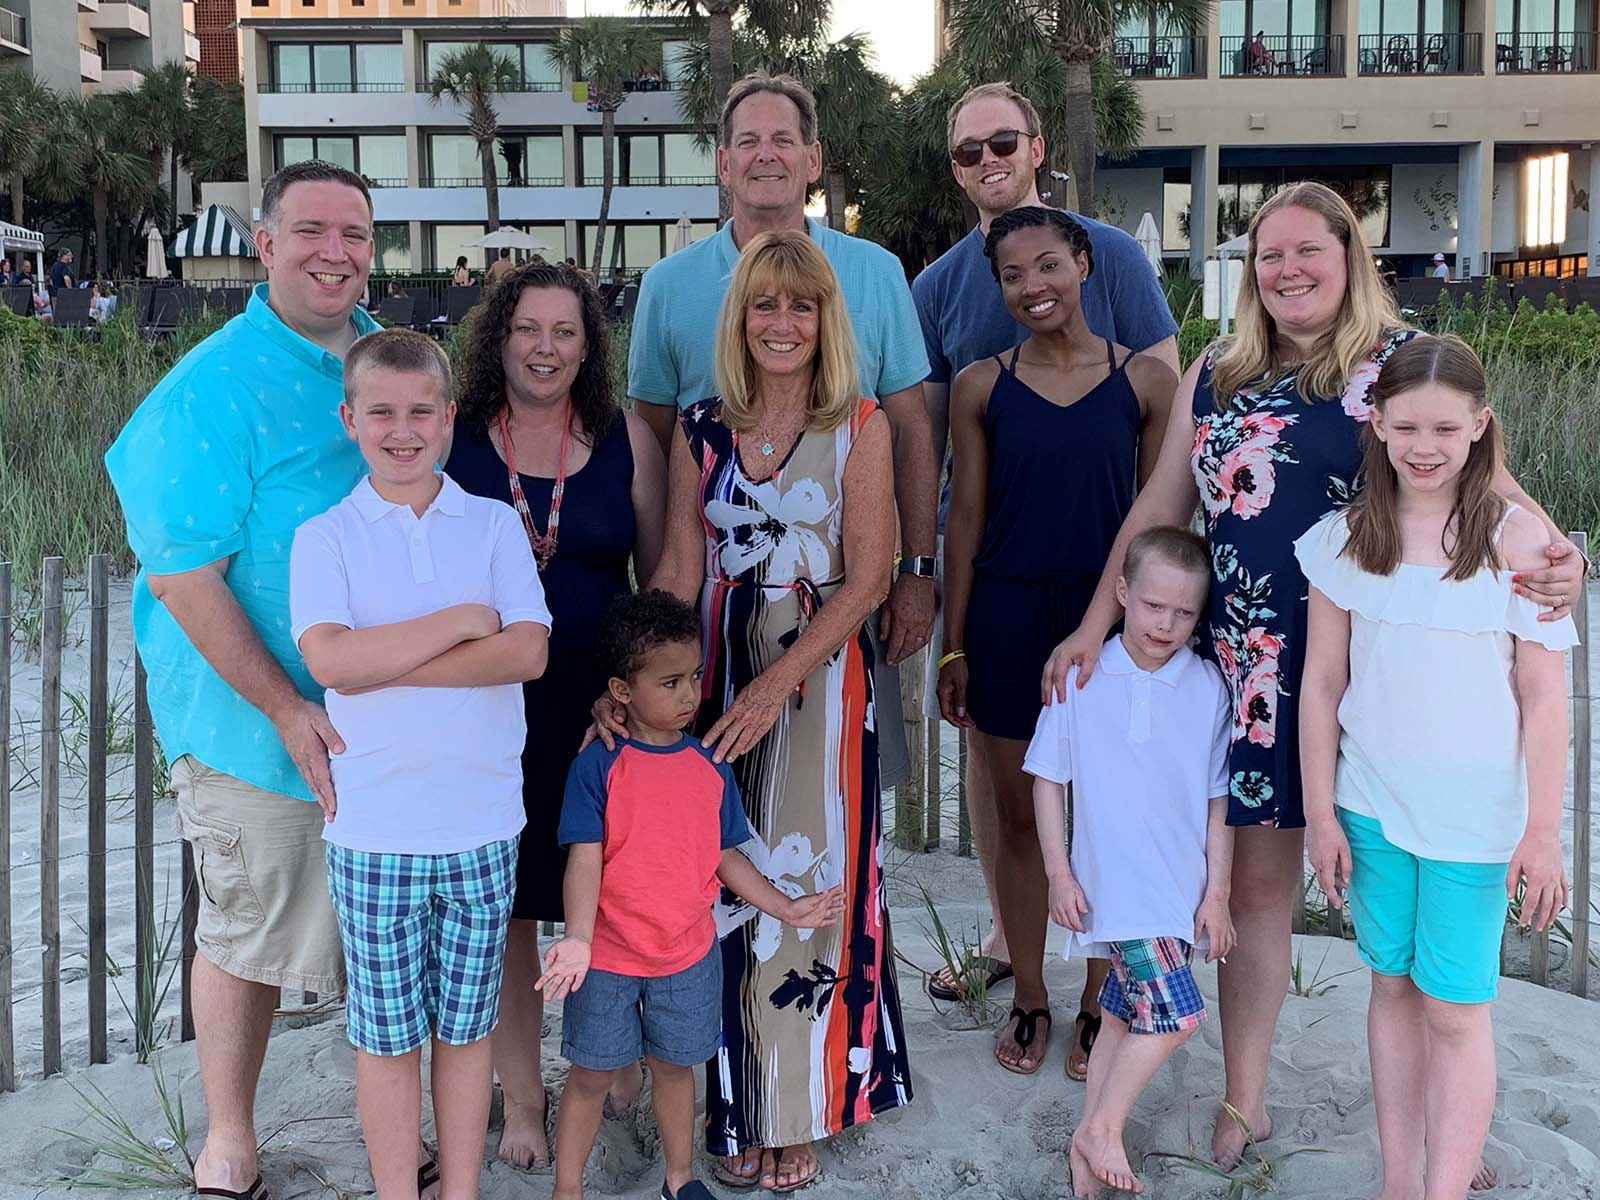 Big group of family members posing on the beach